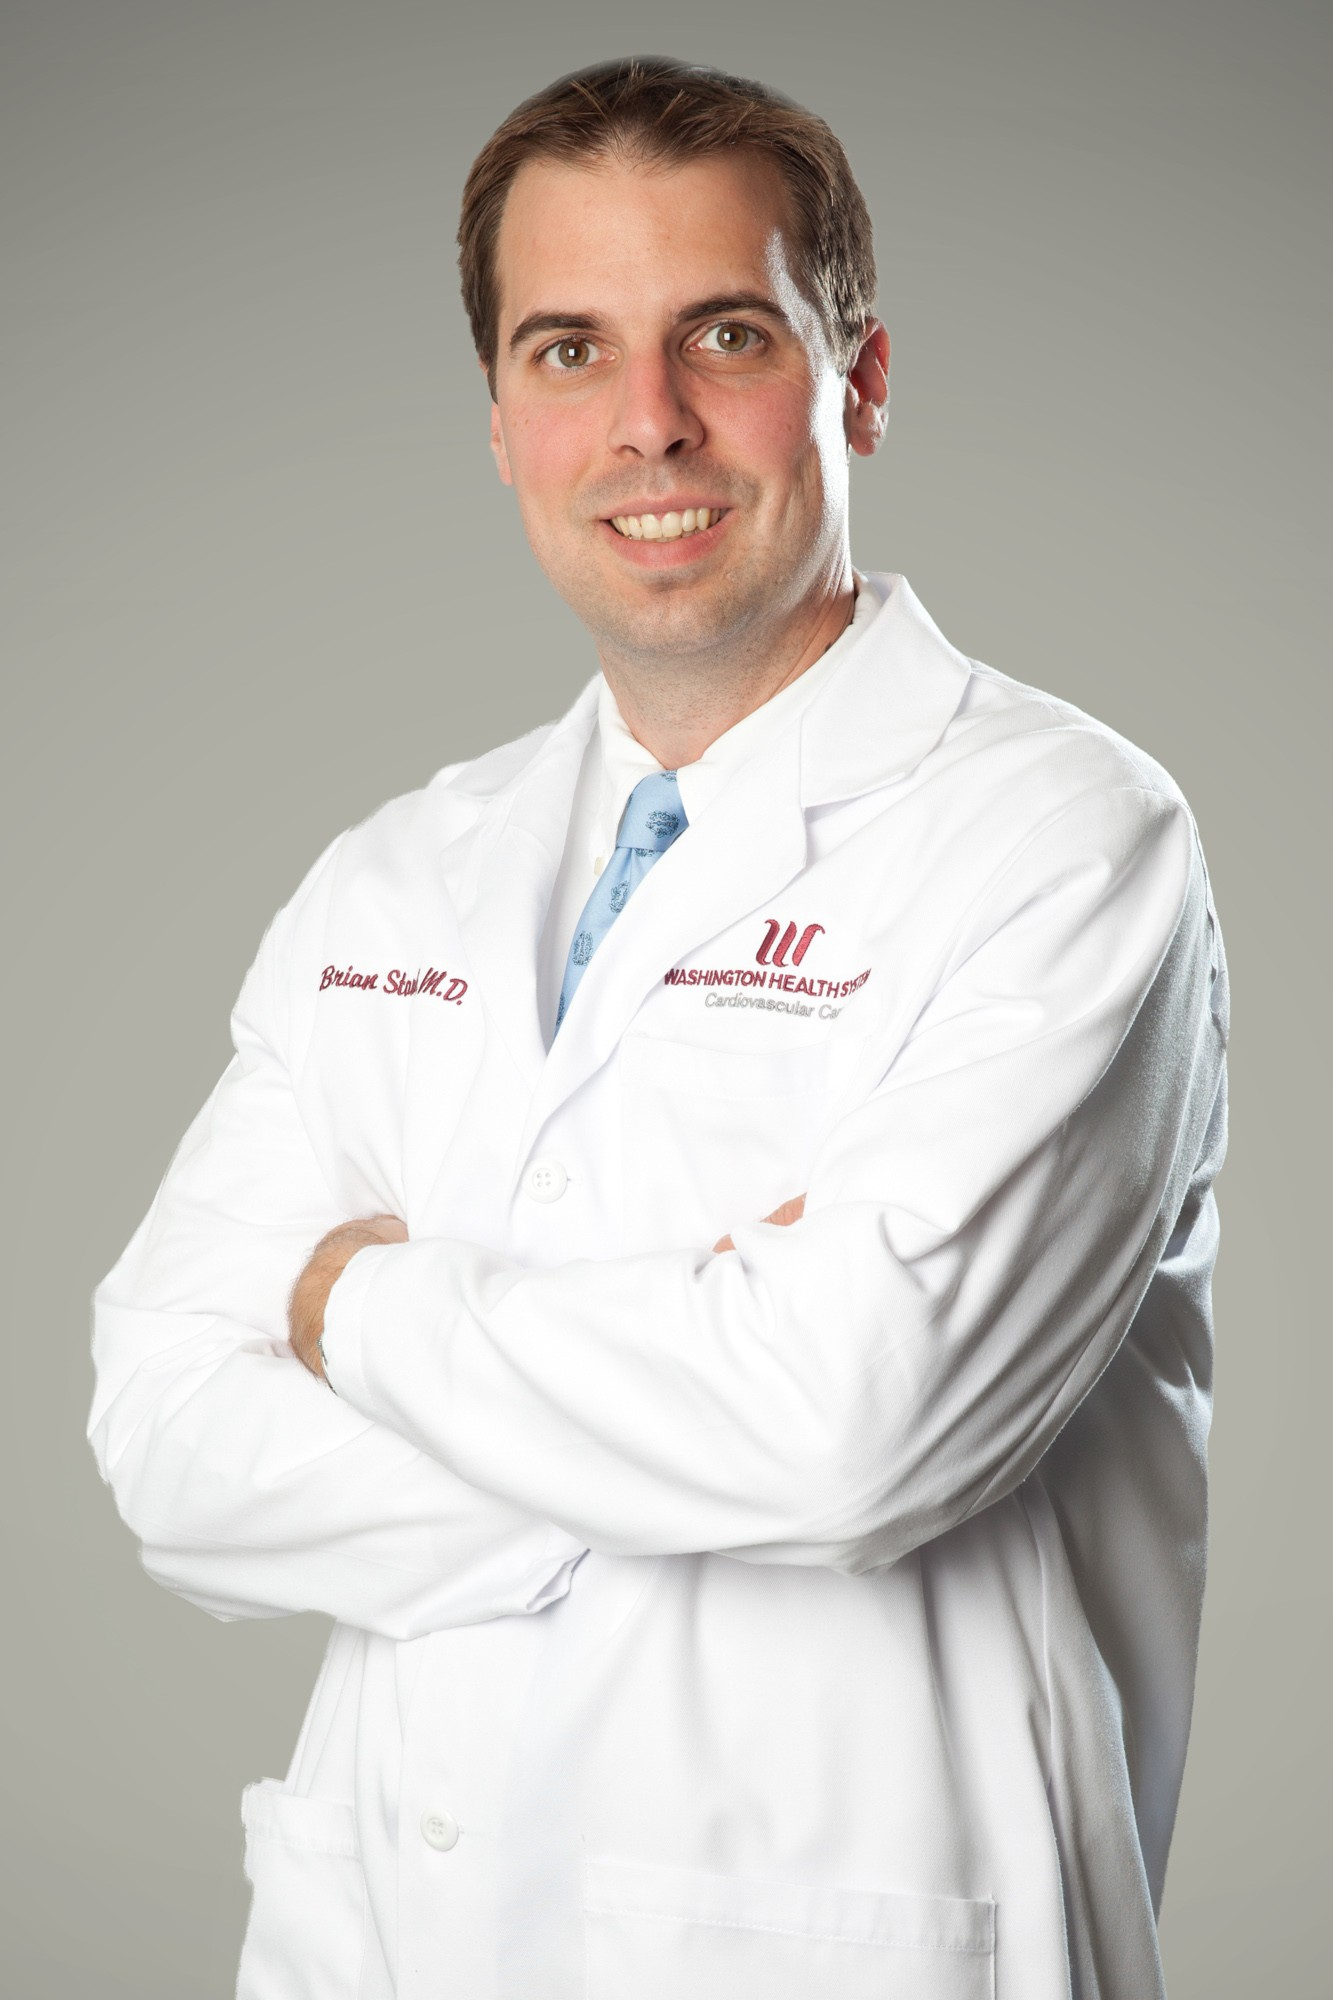 Photo of Brian A. Staub, M.D.